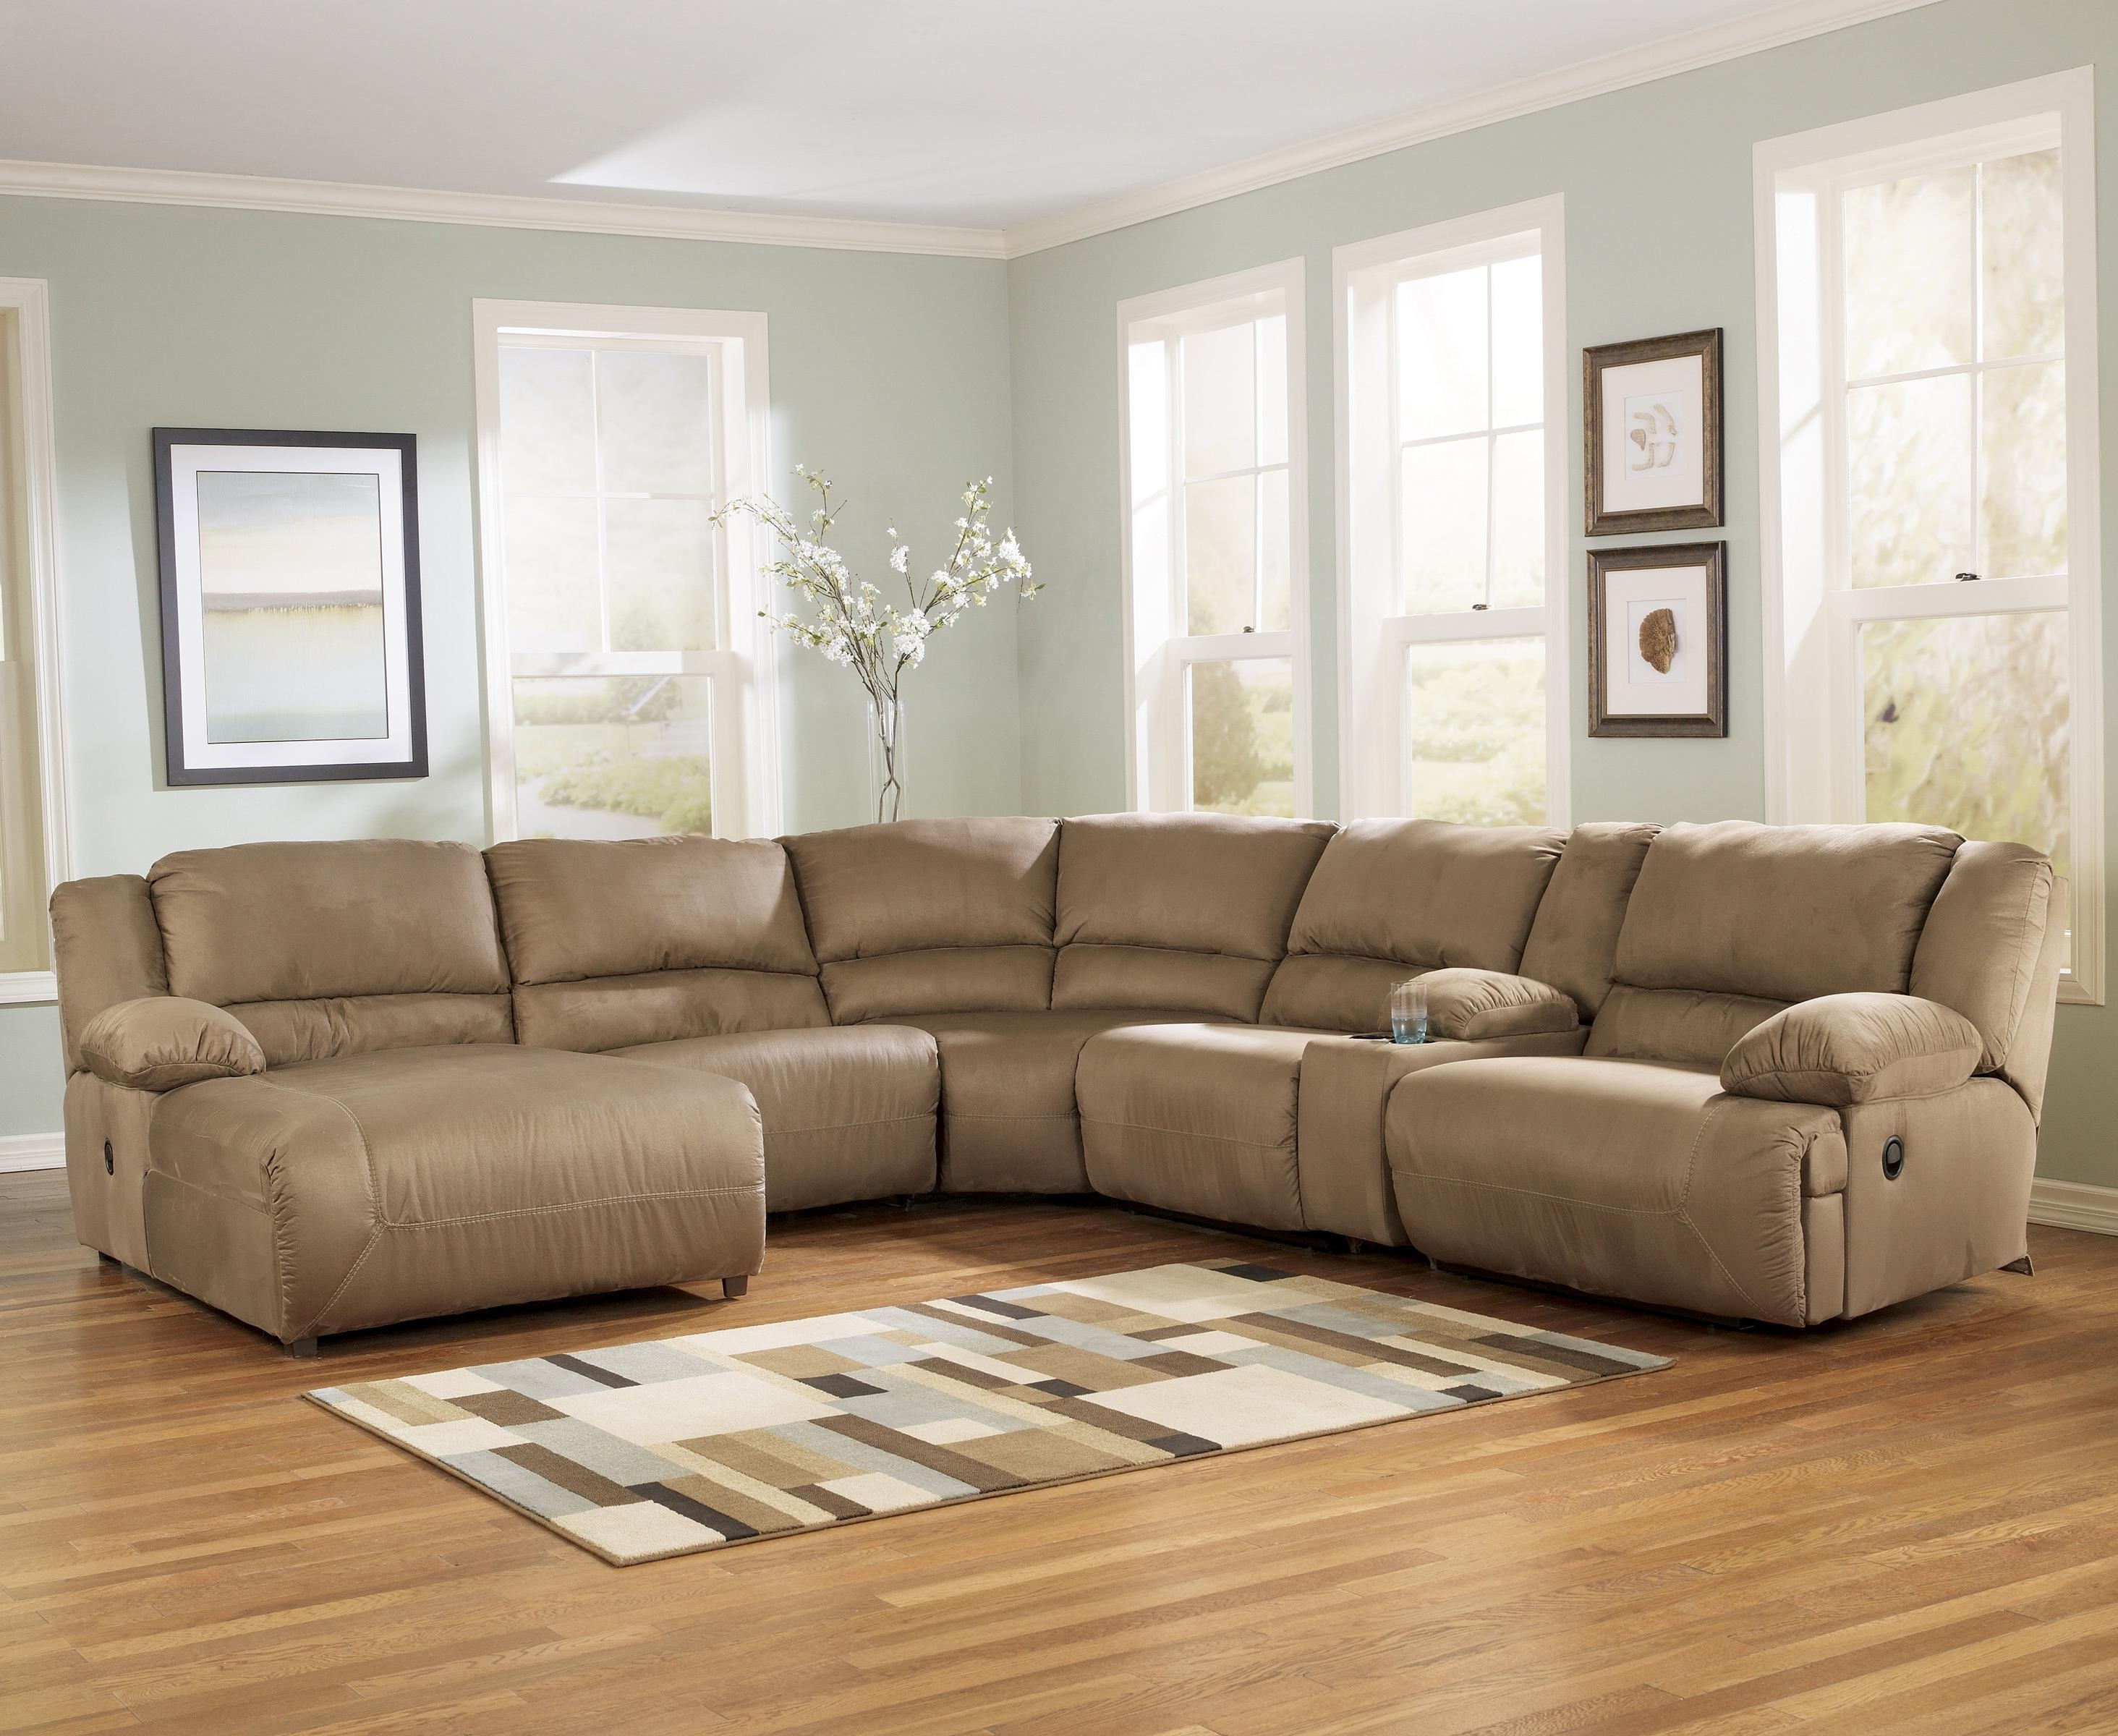 Signature Designashley Hogan – Mocha 6 Piece Motion Sectional In El Paso Tx Sectional Sofas (View 4 of 10)